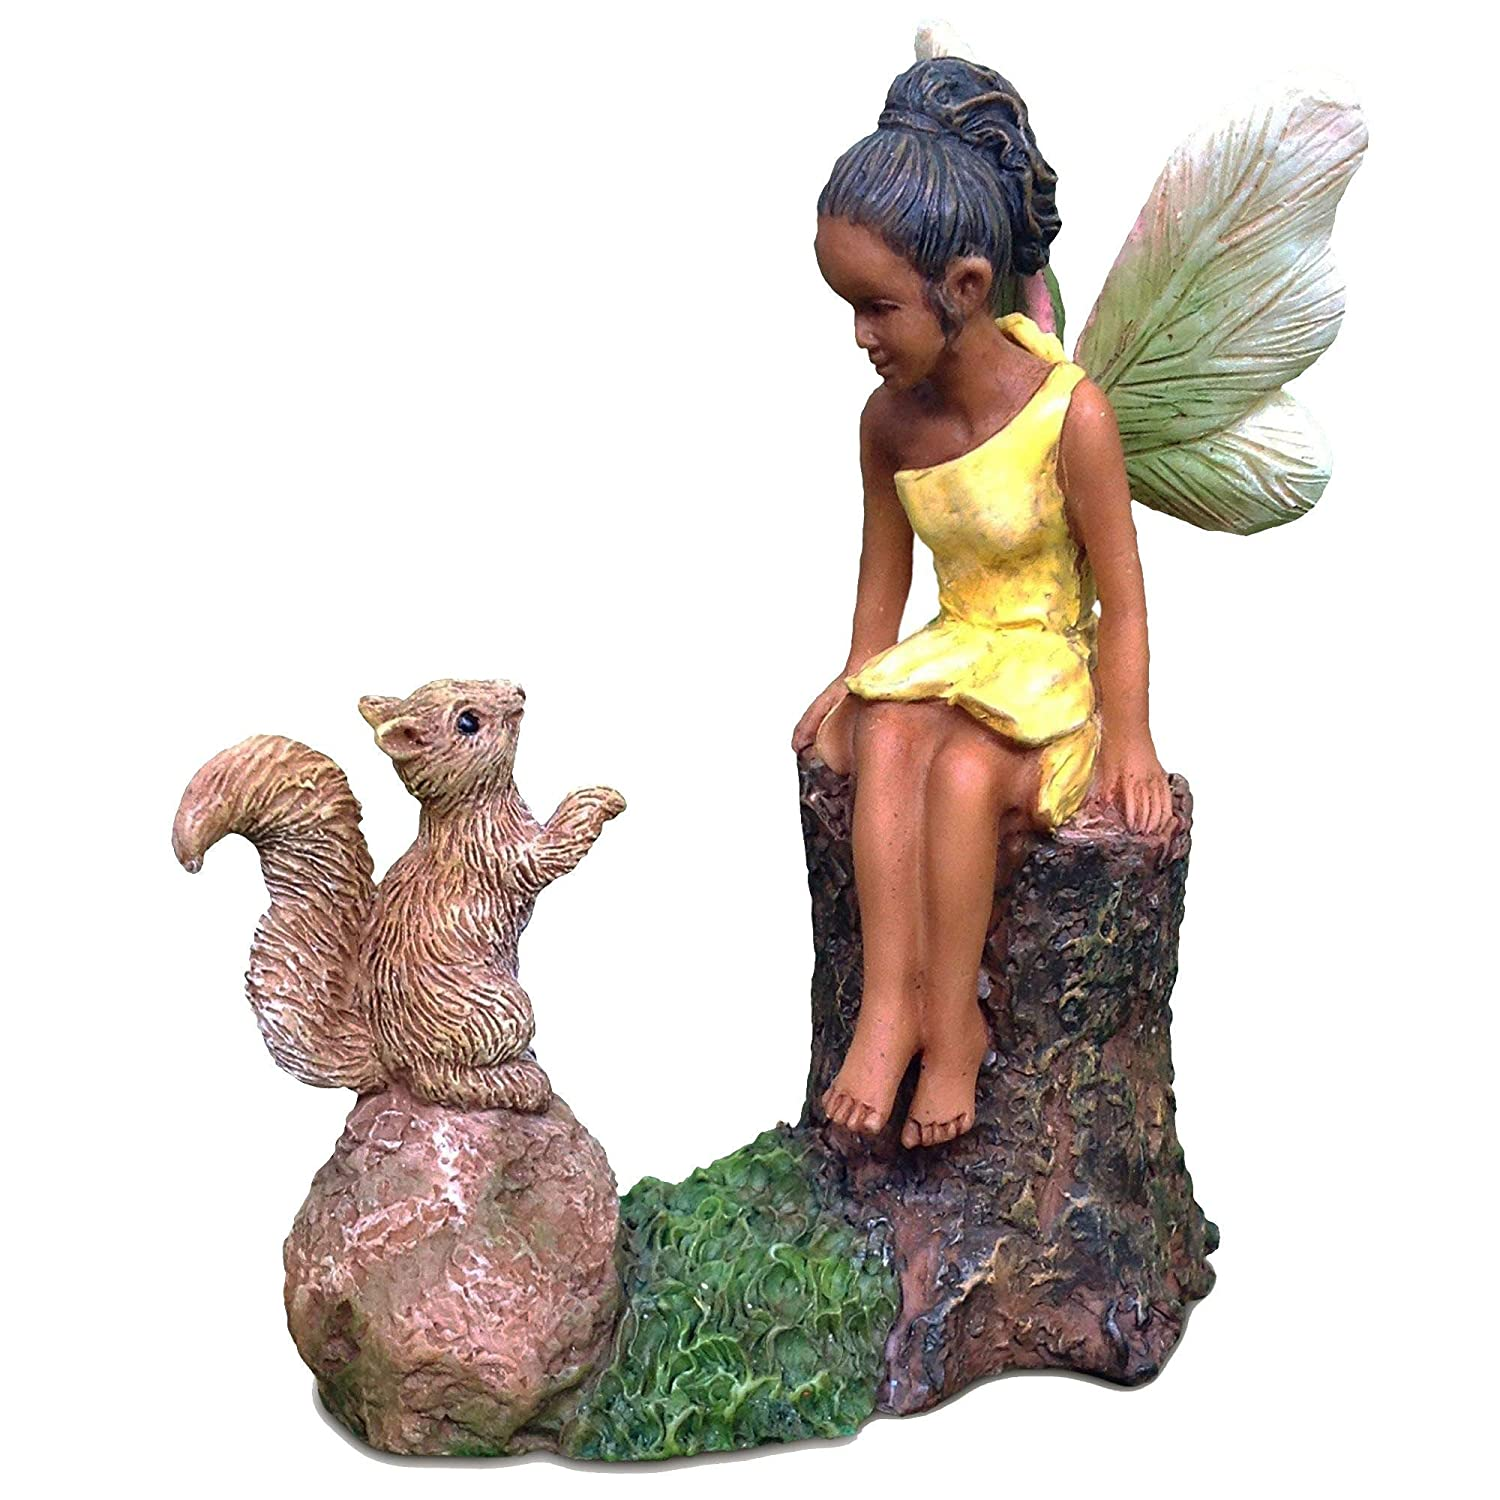 Mg75 Making Friends Marshall Home and Garden Fairy Garden Figure by Woodland Knoll